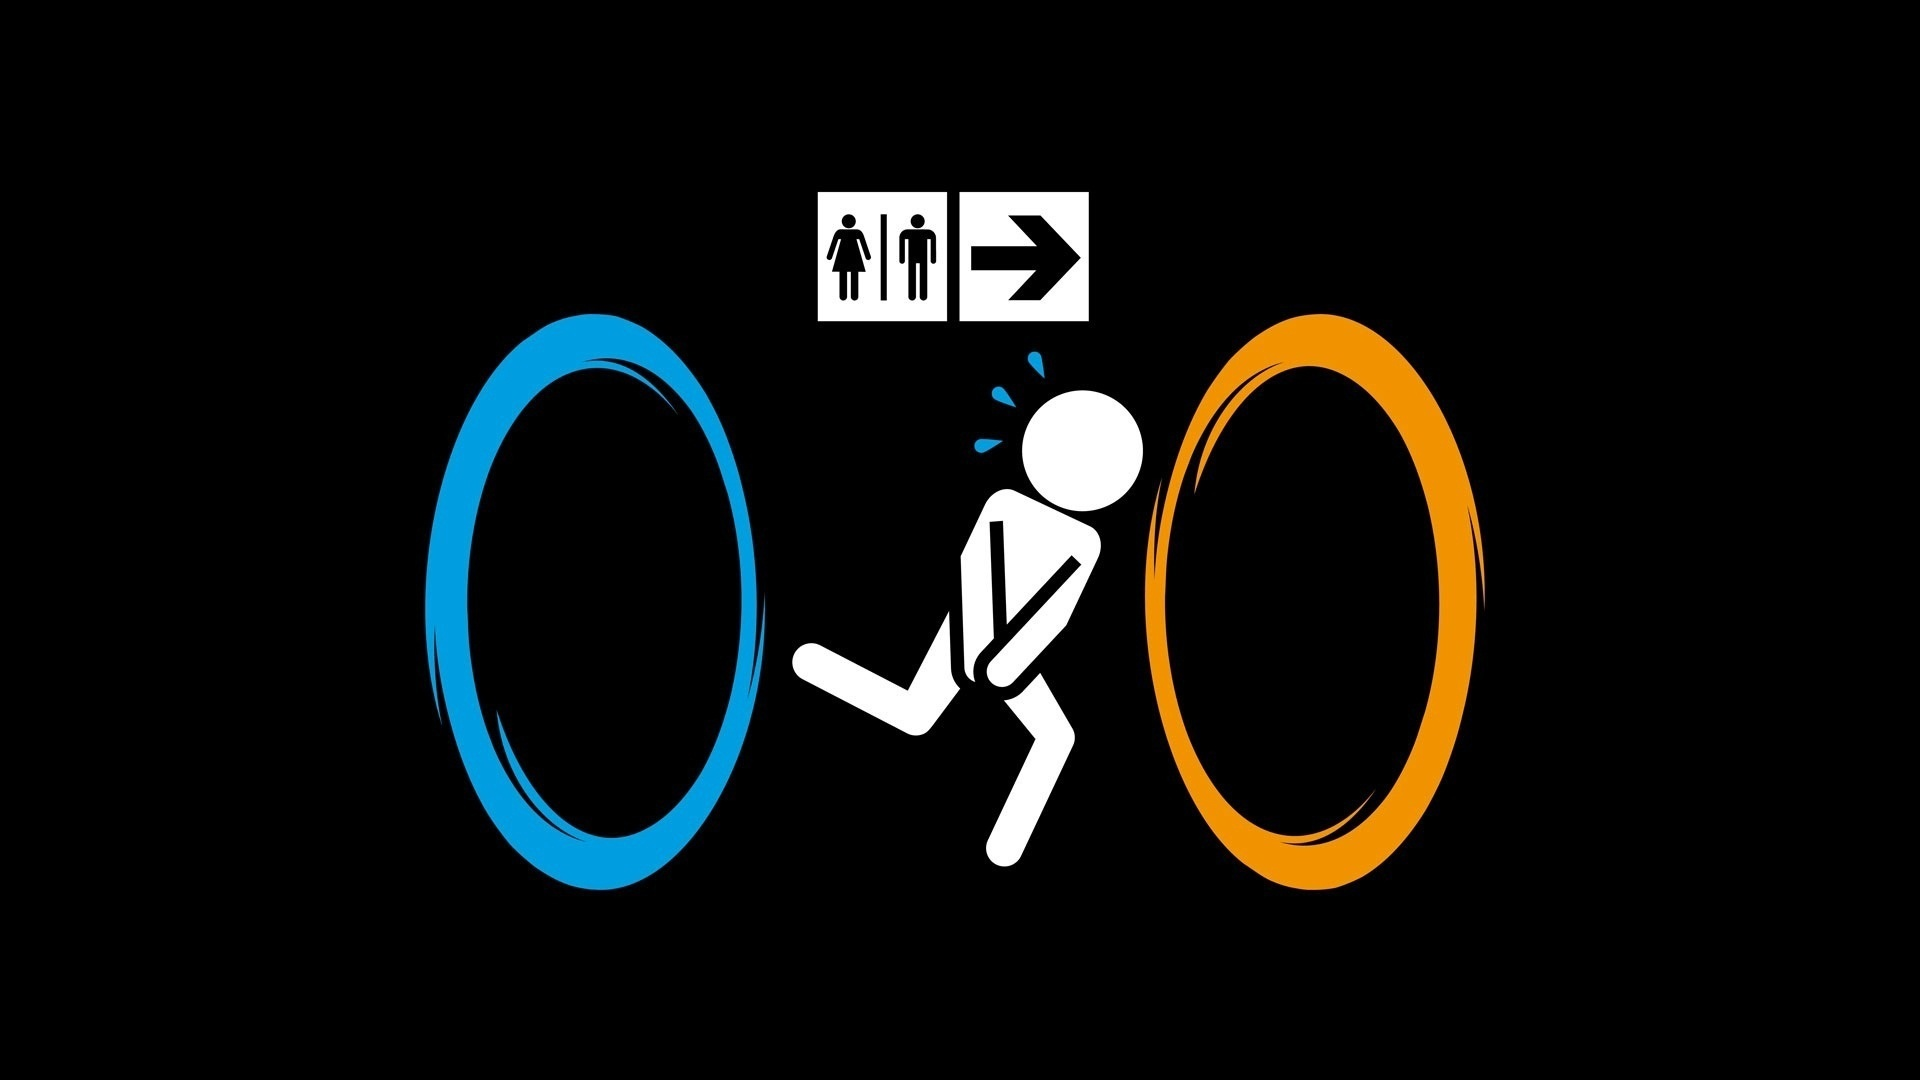 Portal funny   High Definition Wallpapers   HD wallpapers 1920x1080